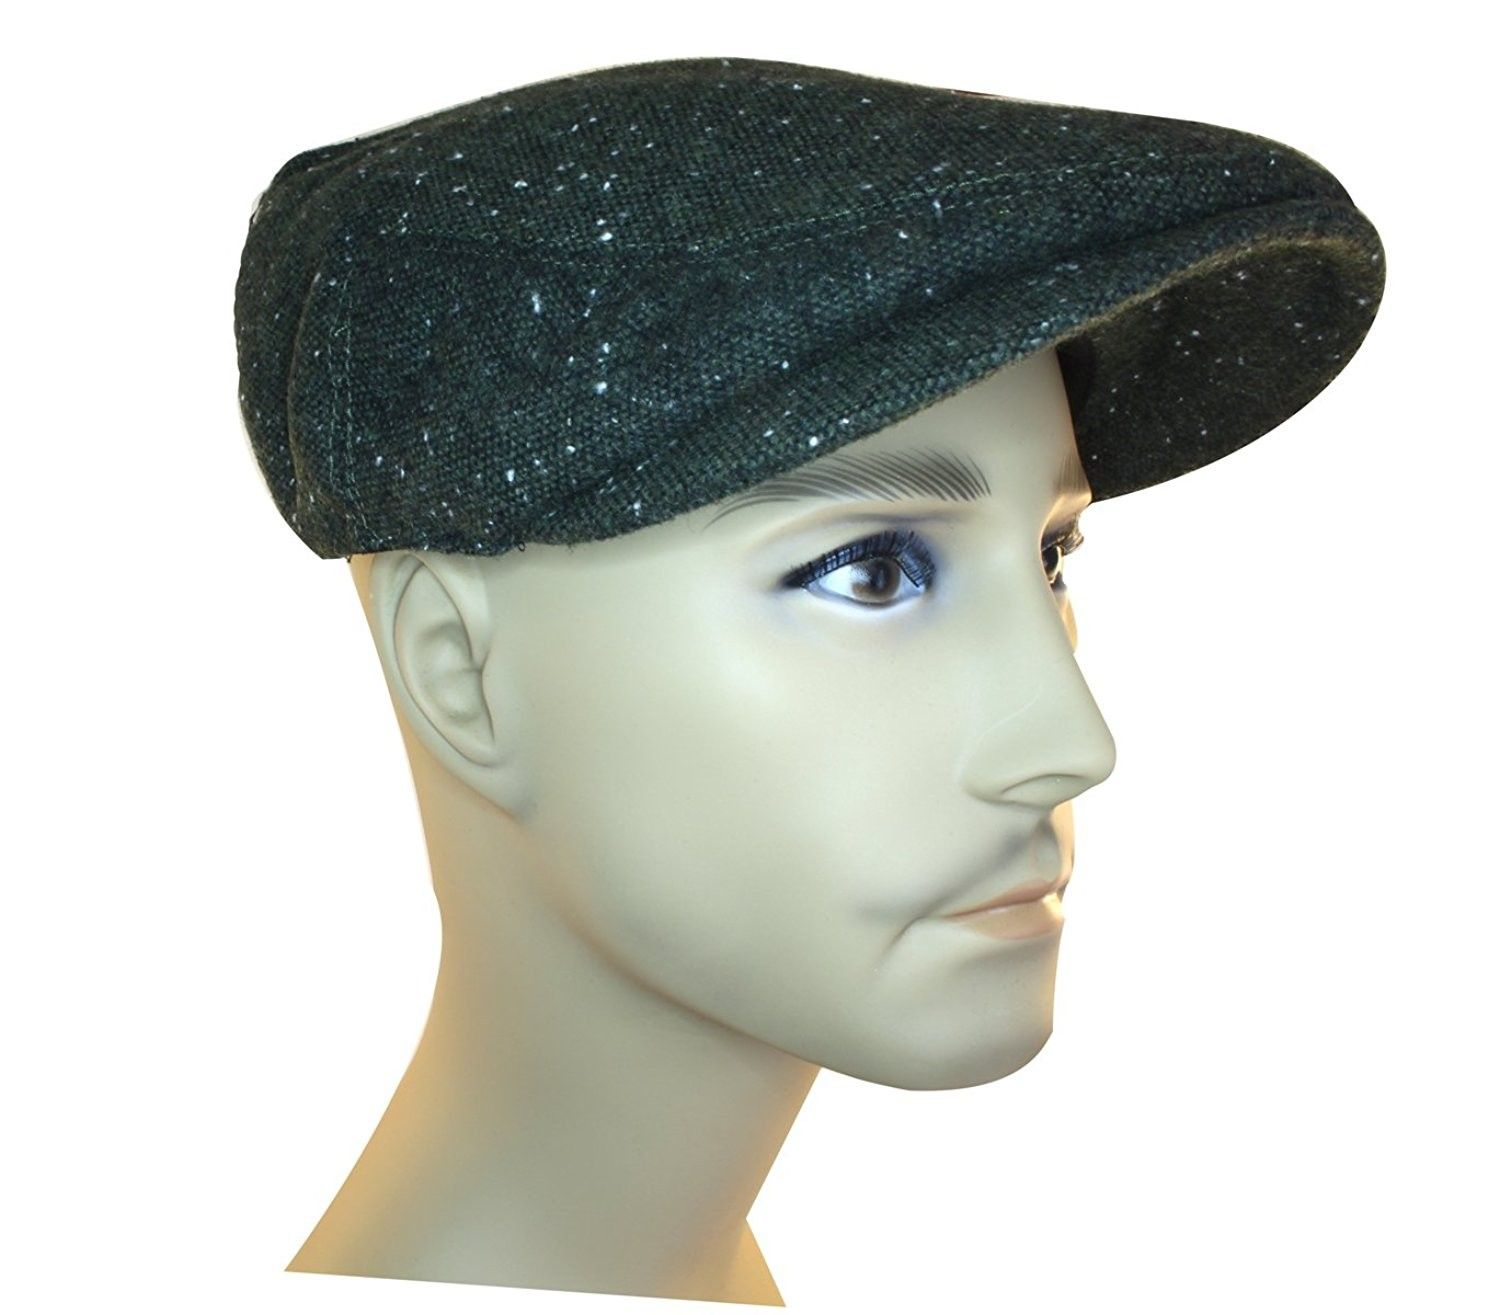 Irish Flat Caps 100% Wool - Green - CB18068S5SA  hats  caps  Newsboy Caps fb76a50a474f